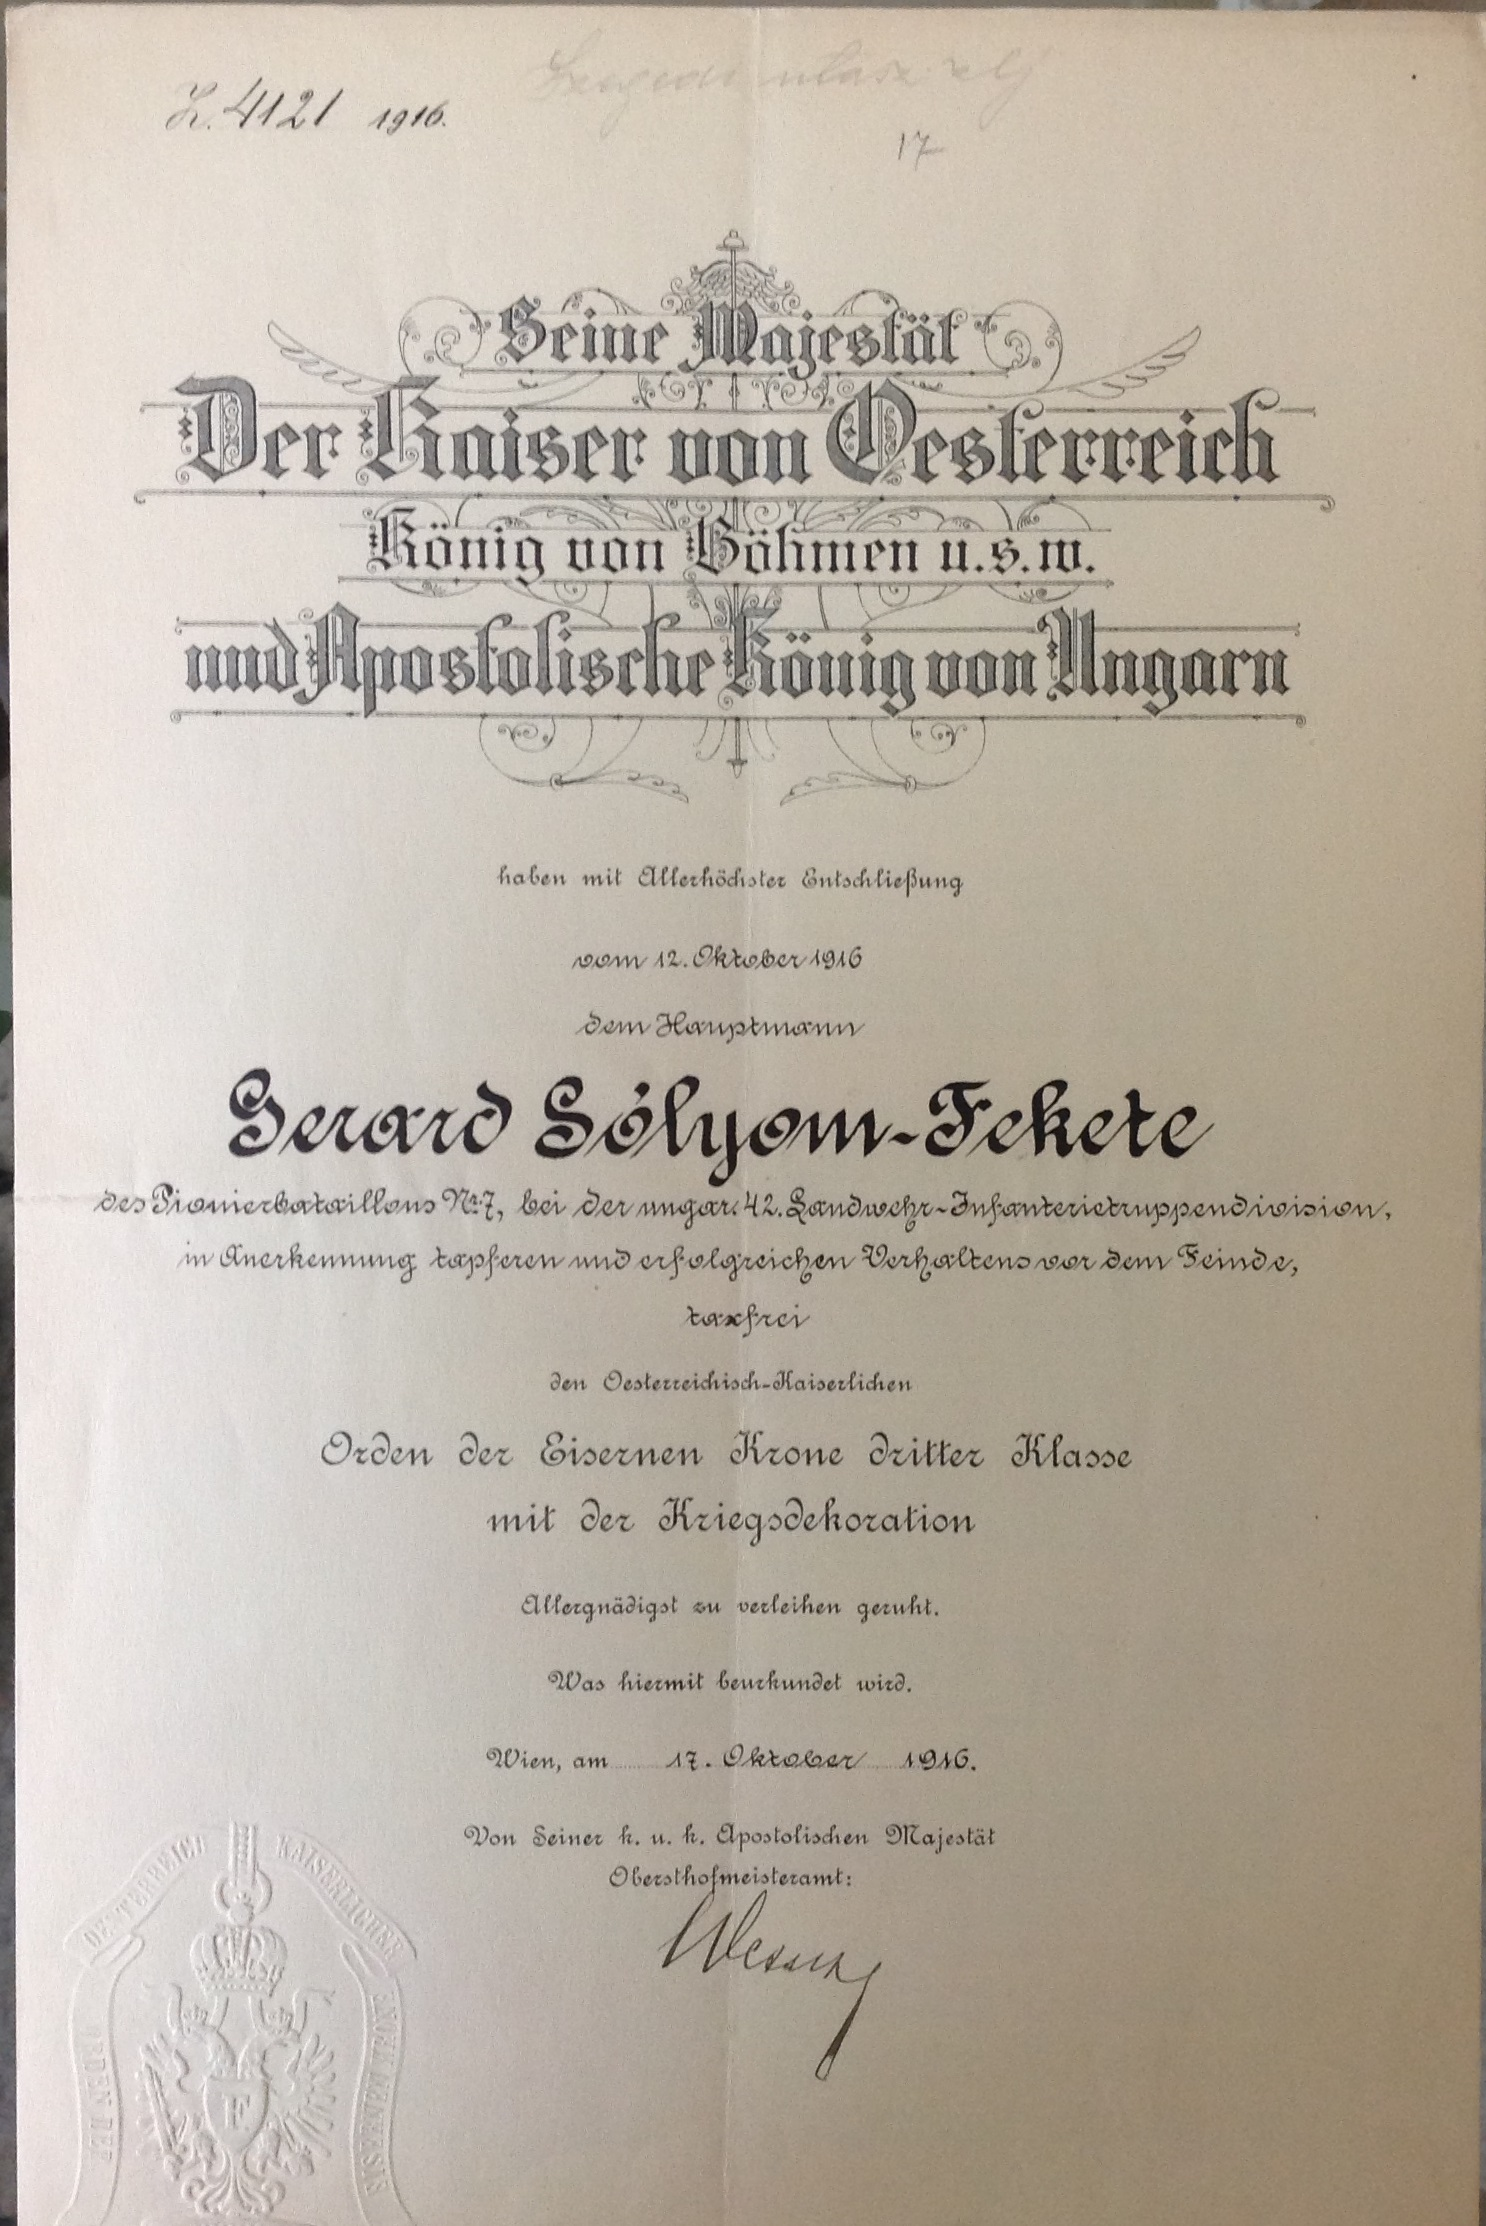 Certificate for the Order of the Iron Crown third class awarded to Gerard Sólyom Fekete